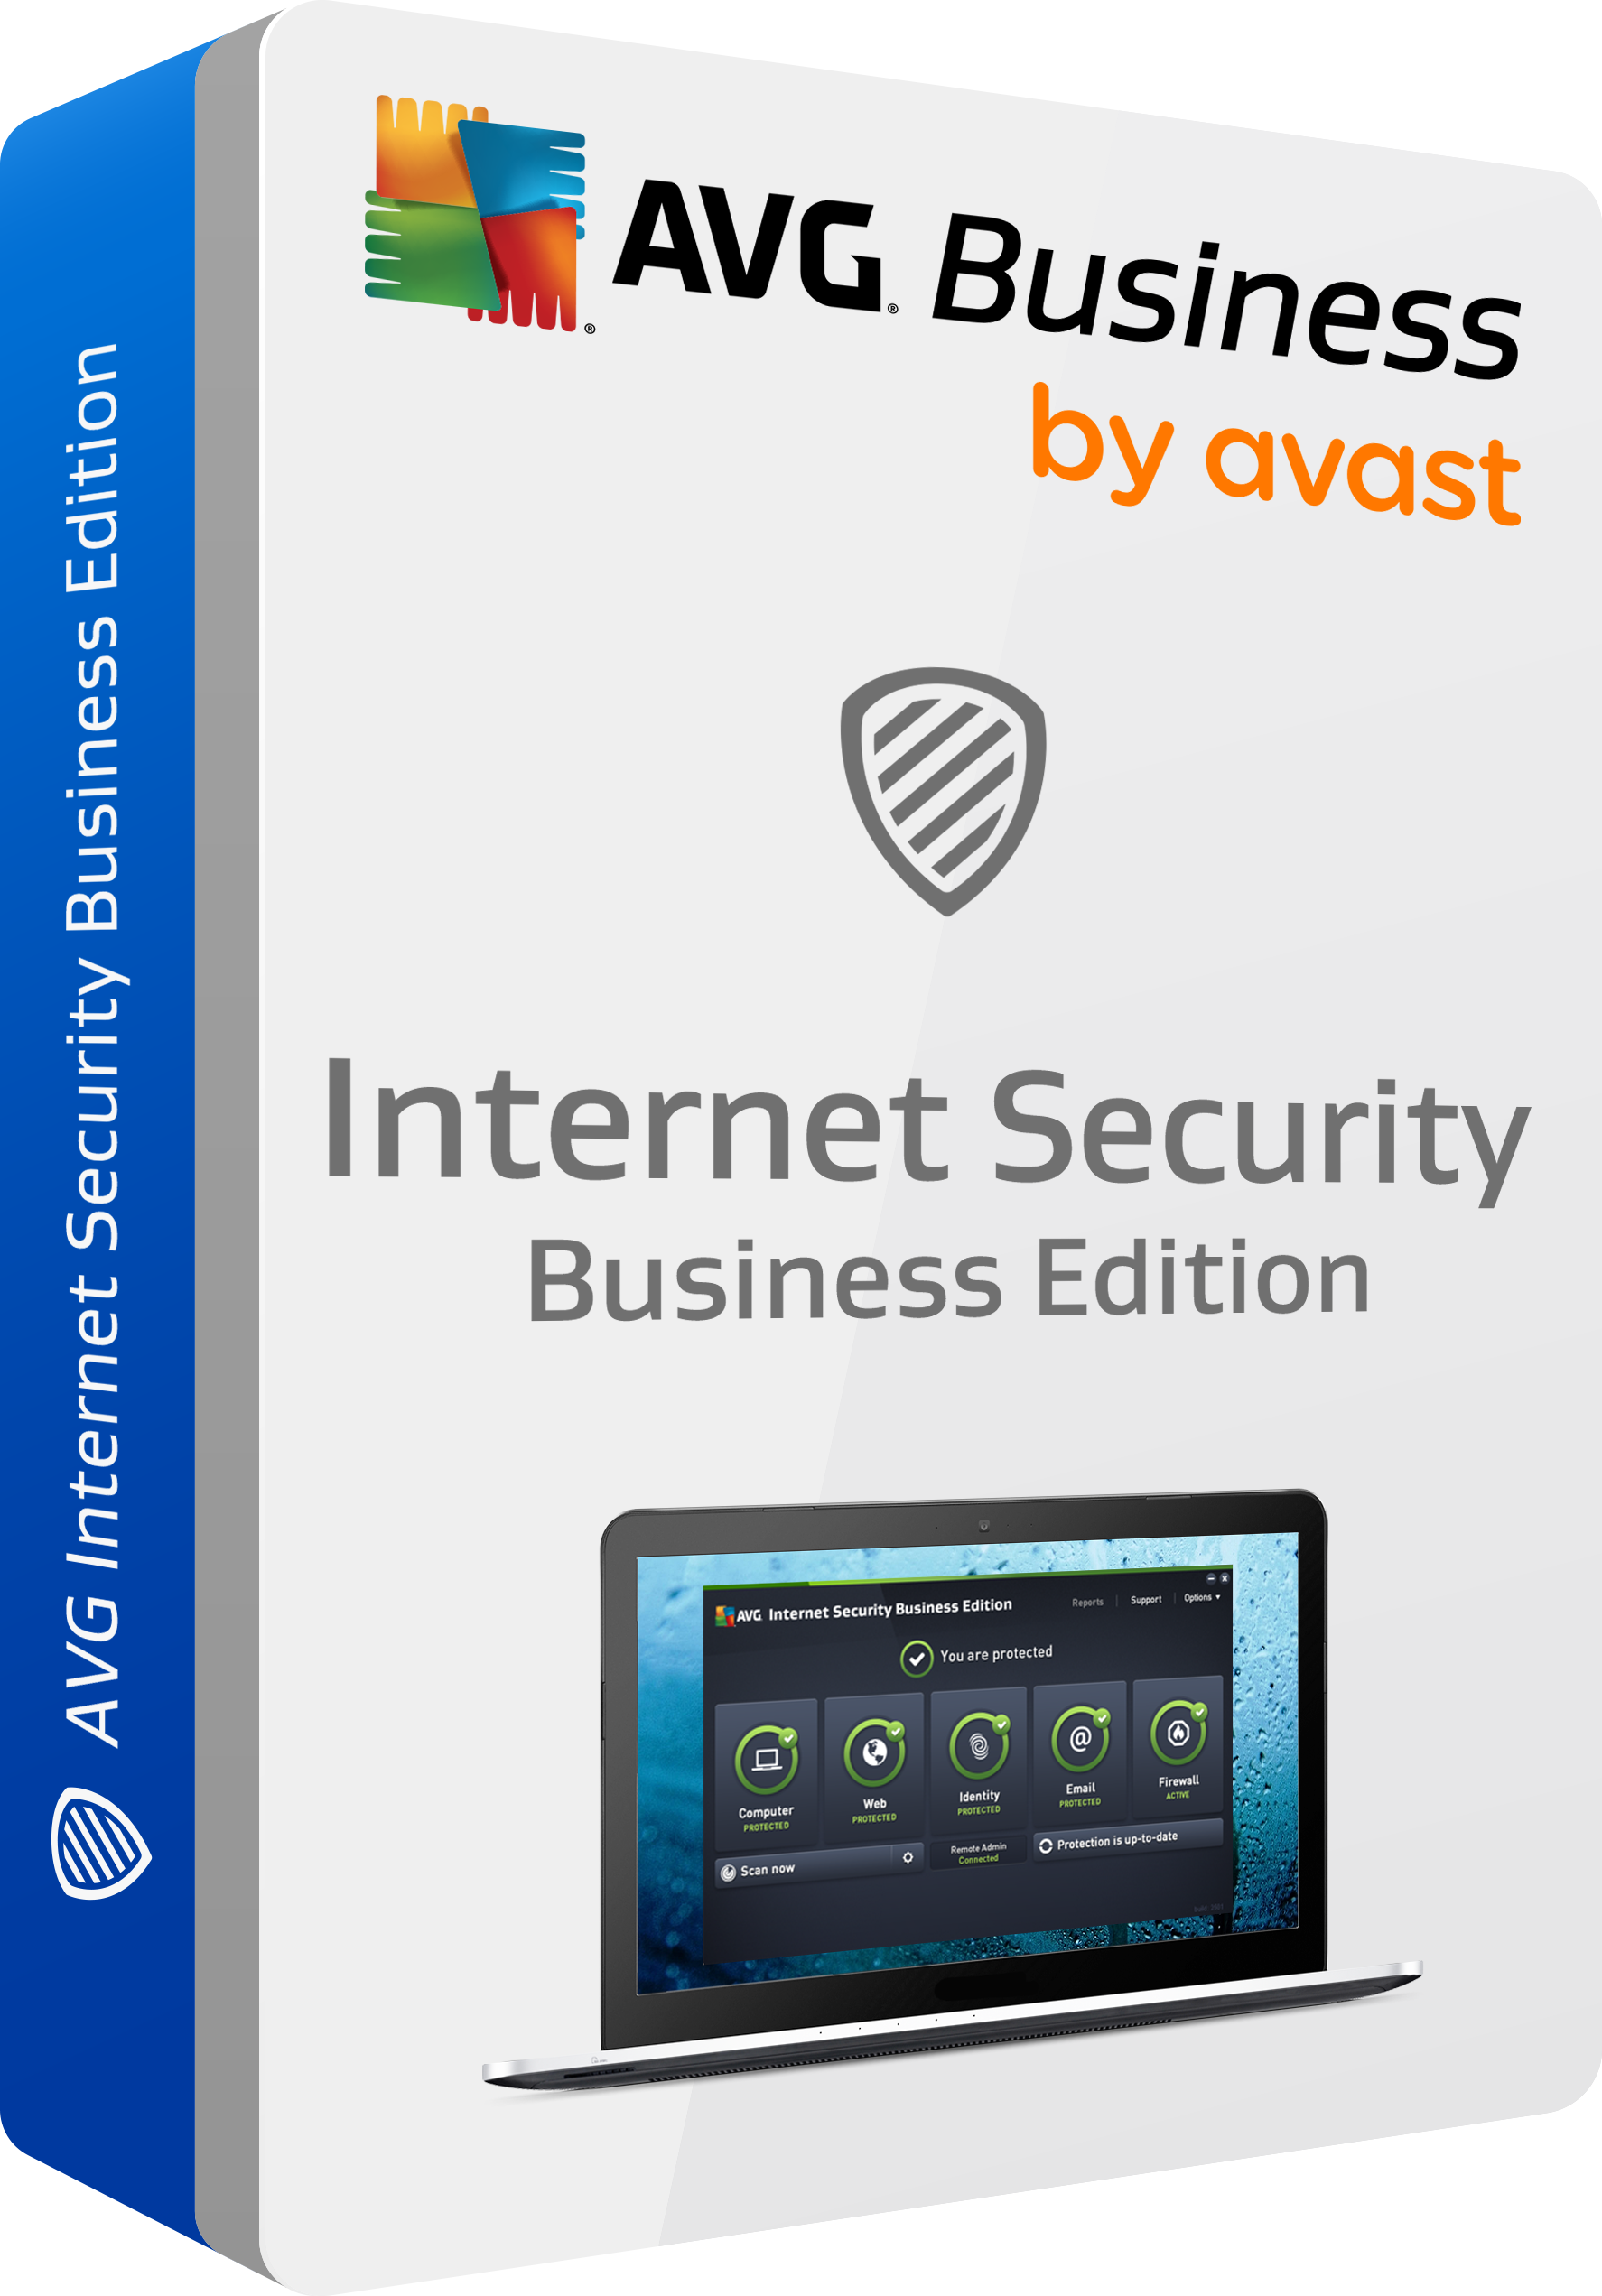 AVG Internet Security Business Edition, 3 Years License